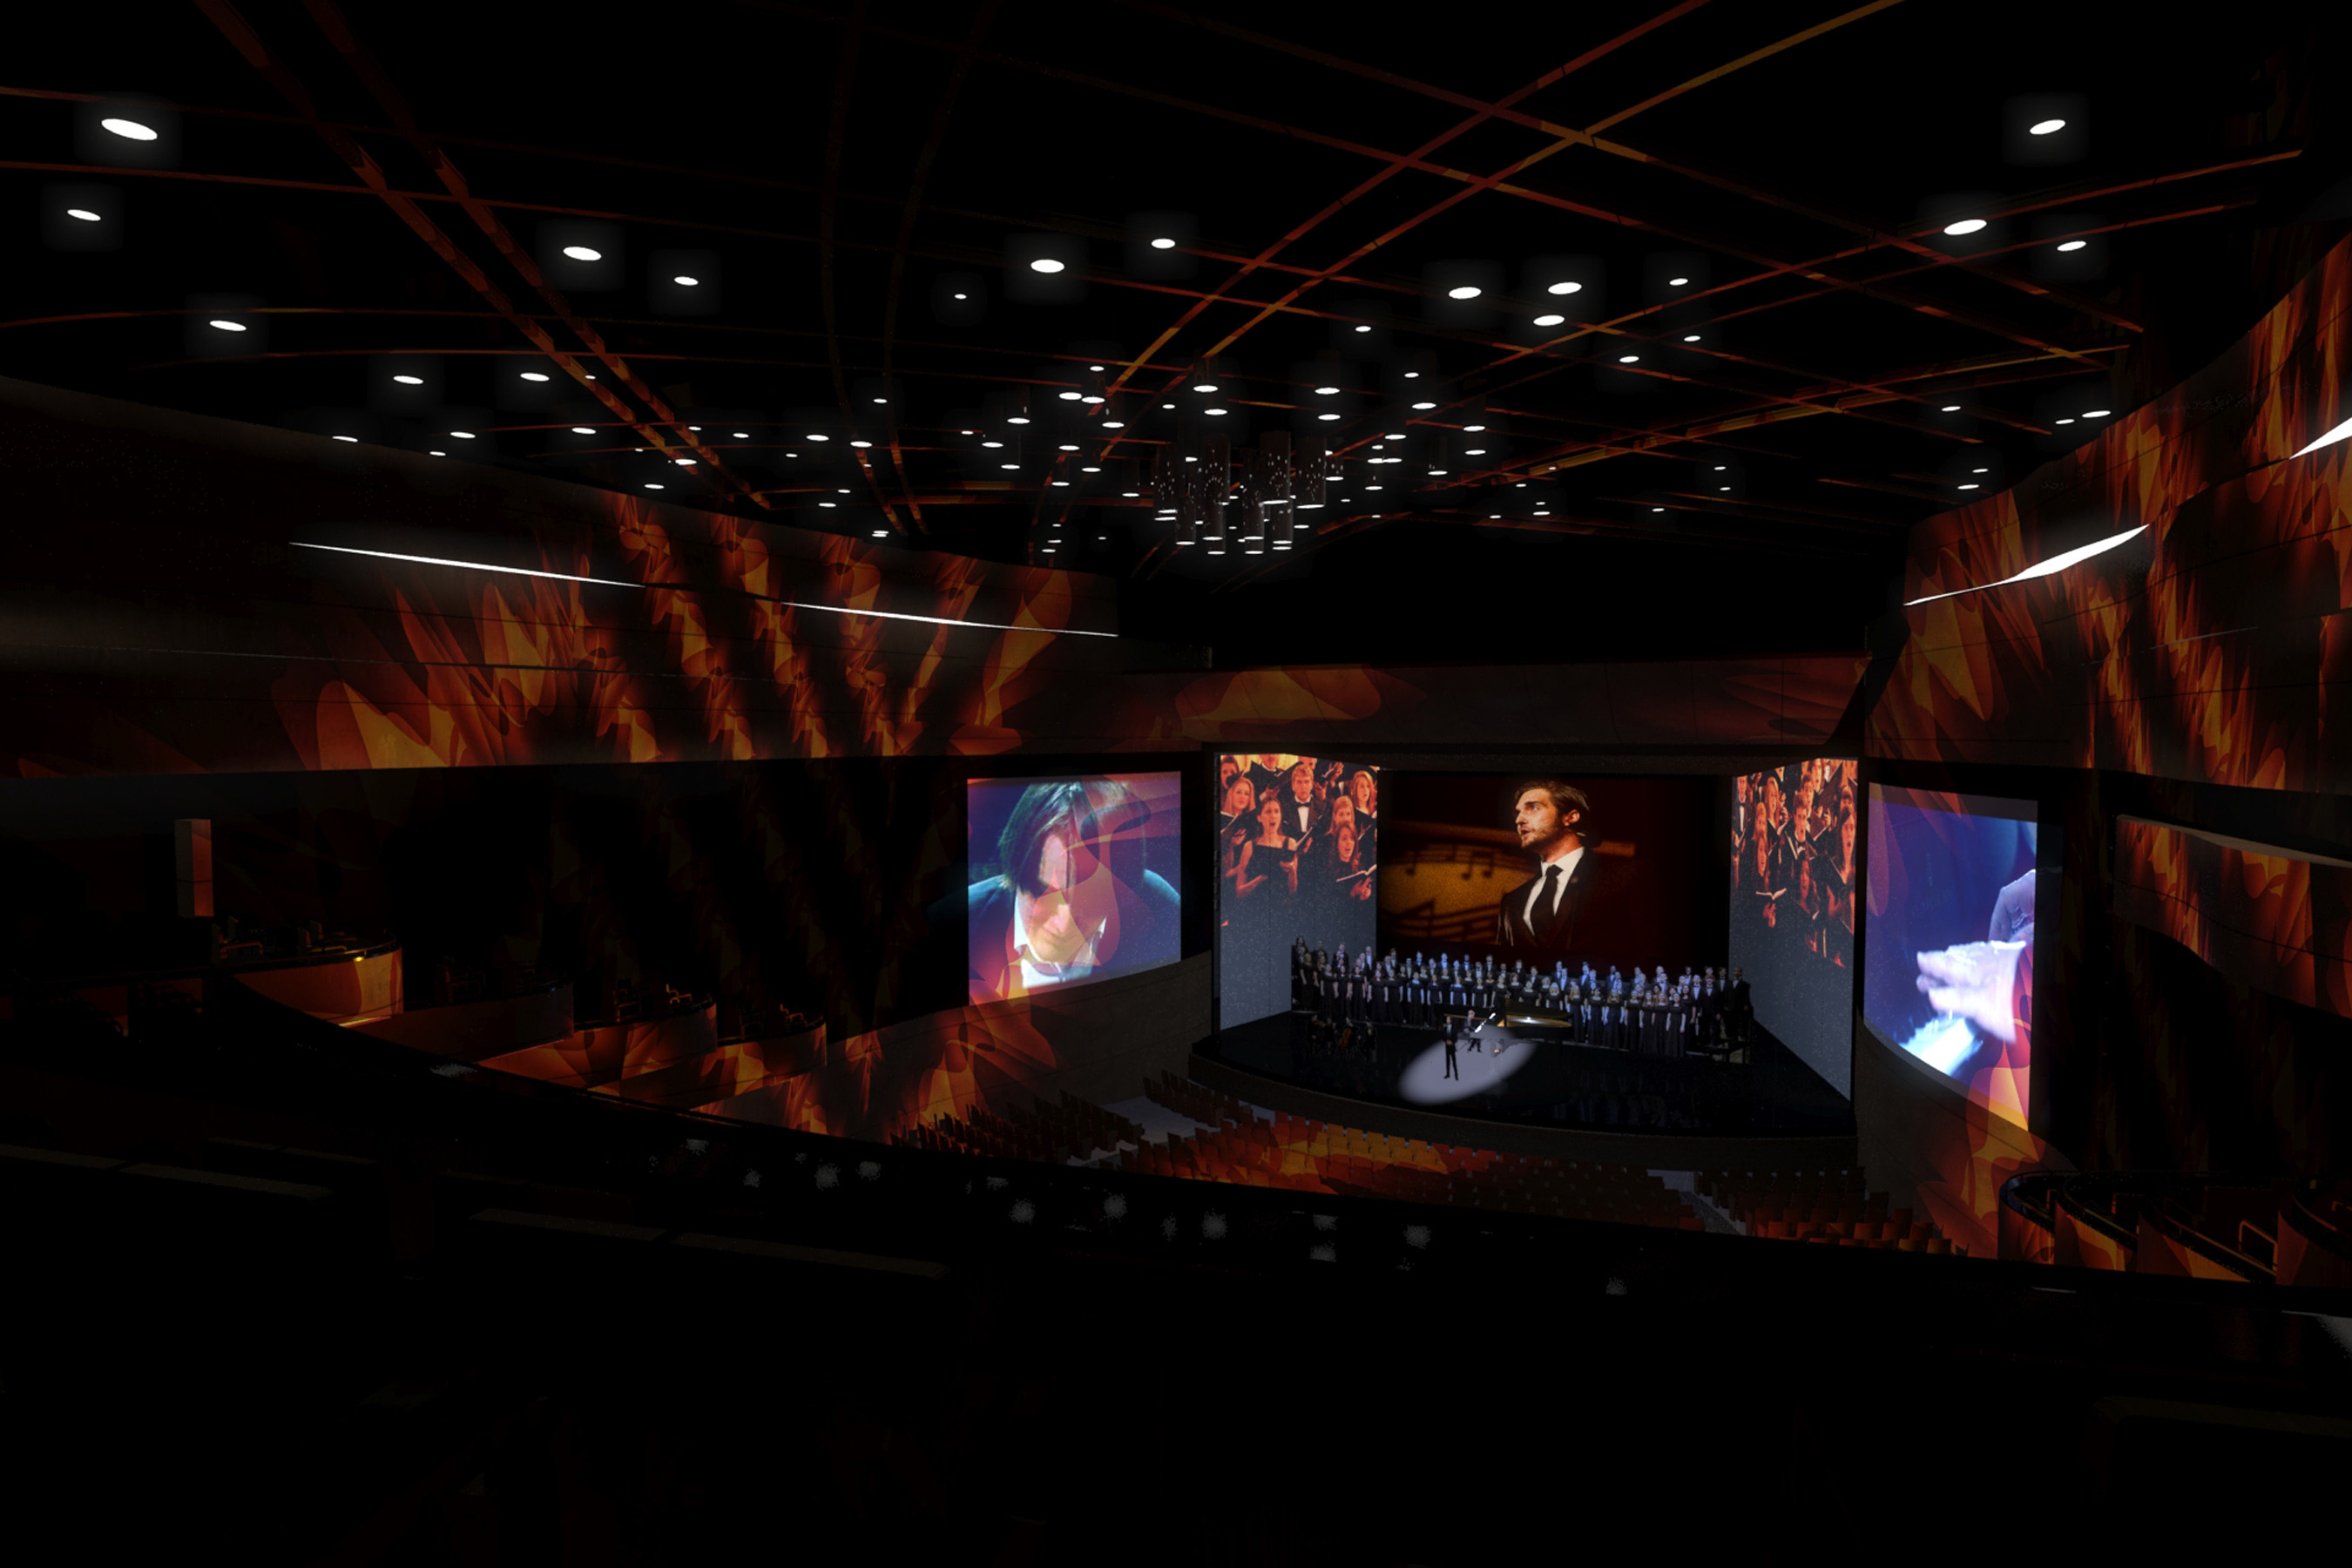 Rendering of the grand Performance Hall in The McKnight Center, complete with state-of-the-art technology